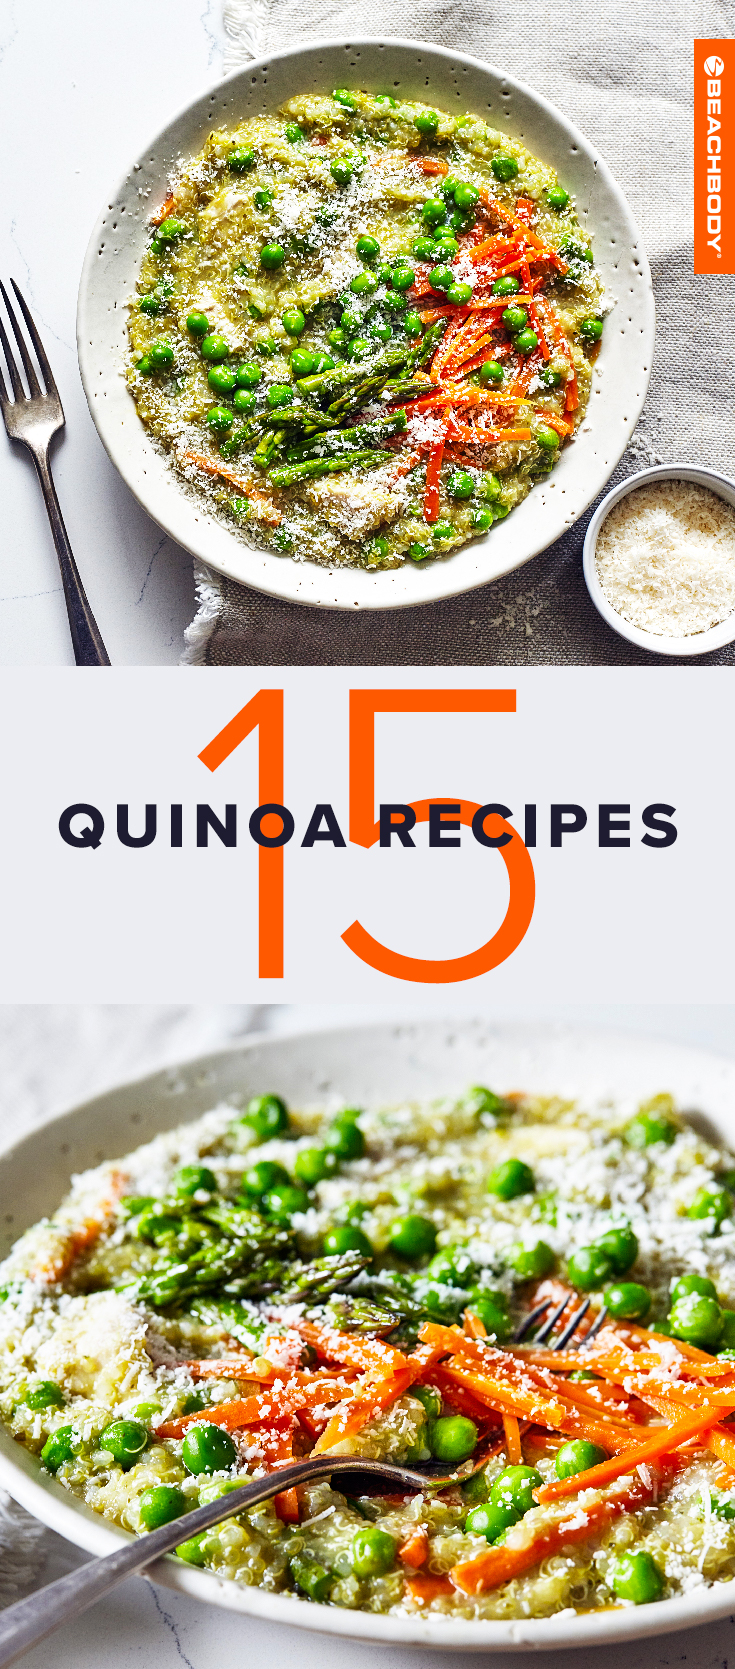 Quinoa Recipes to Meal Prep